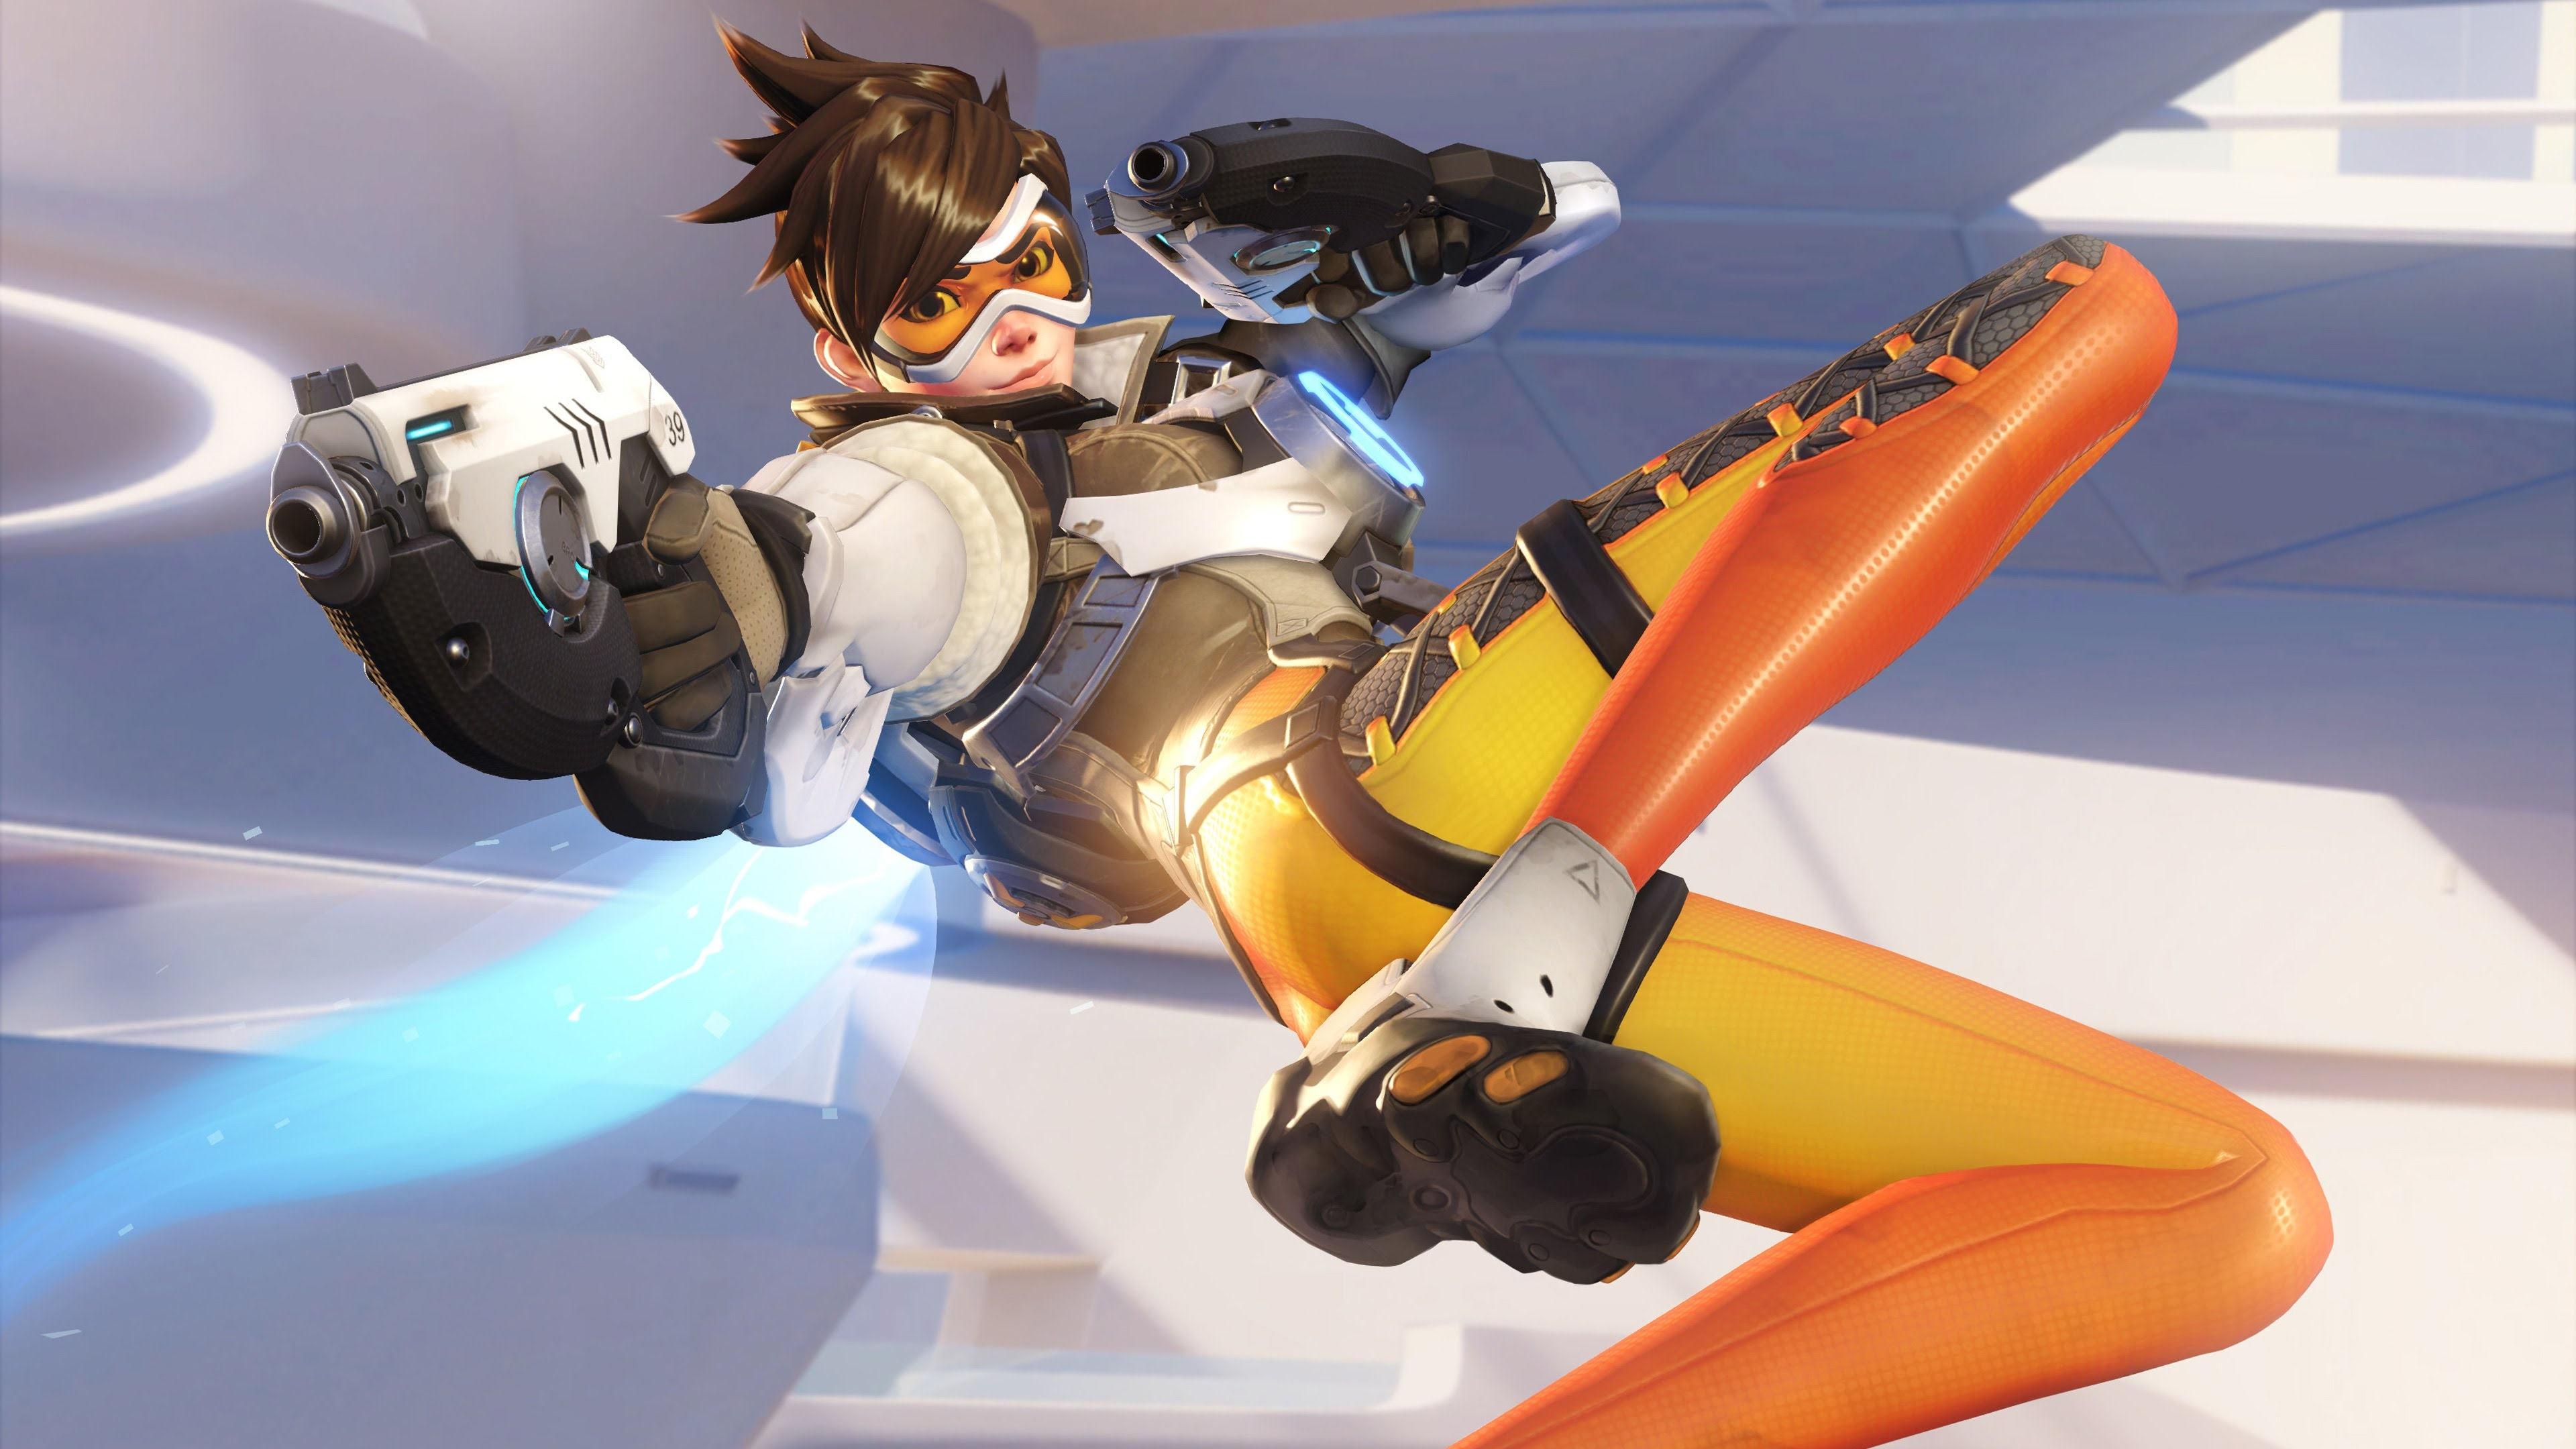 427 Tracer Overwatch Hd Wallpapers Background Images Wallpaper